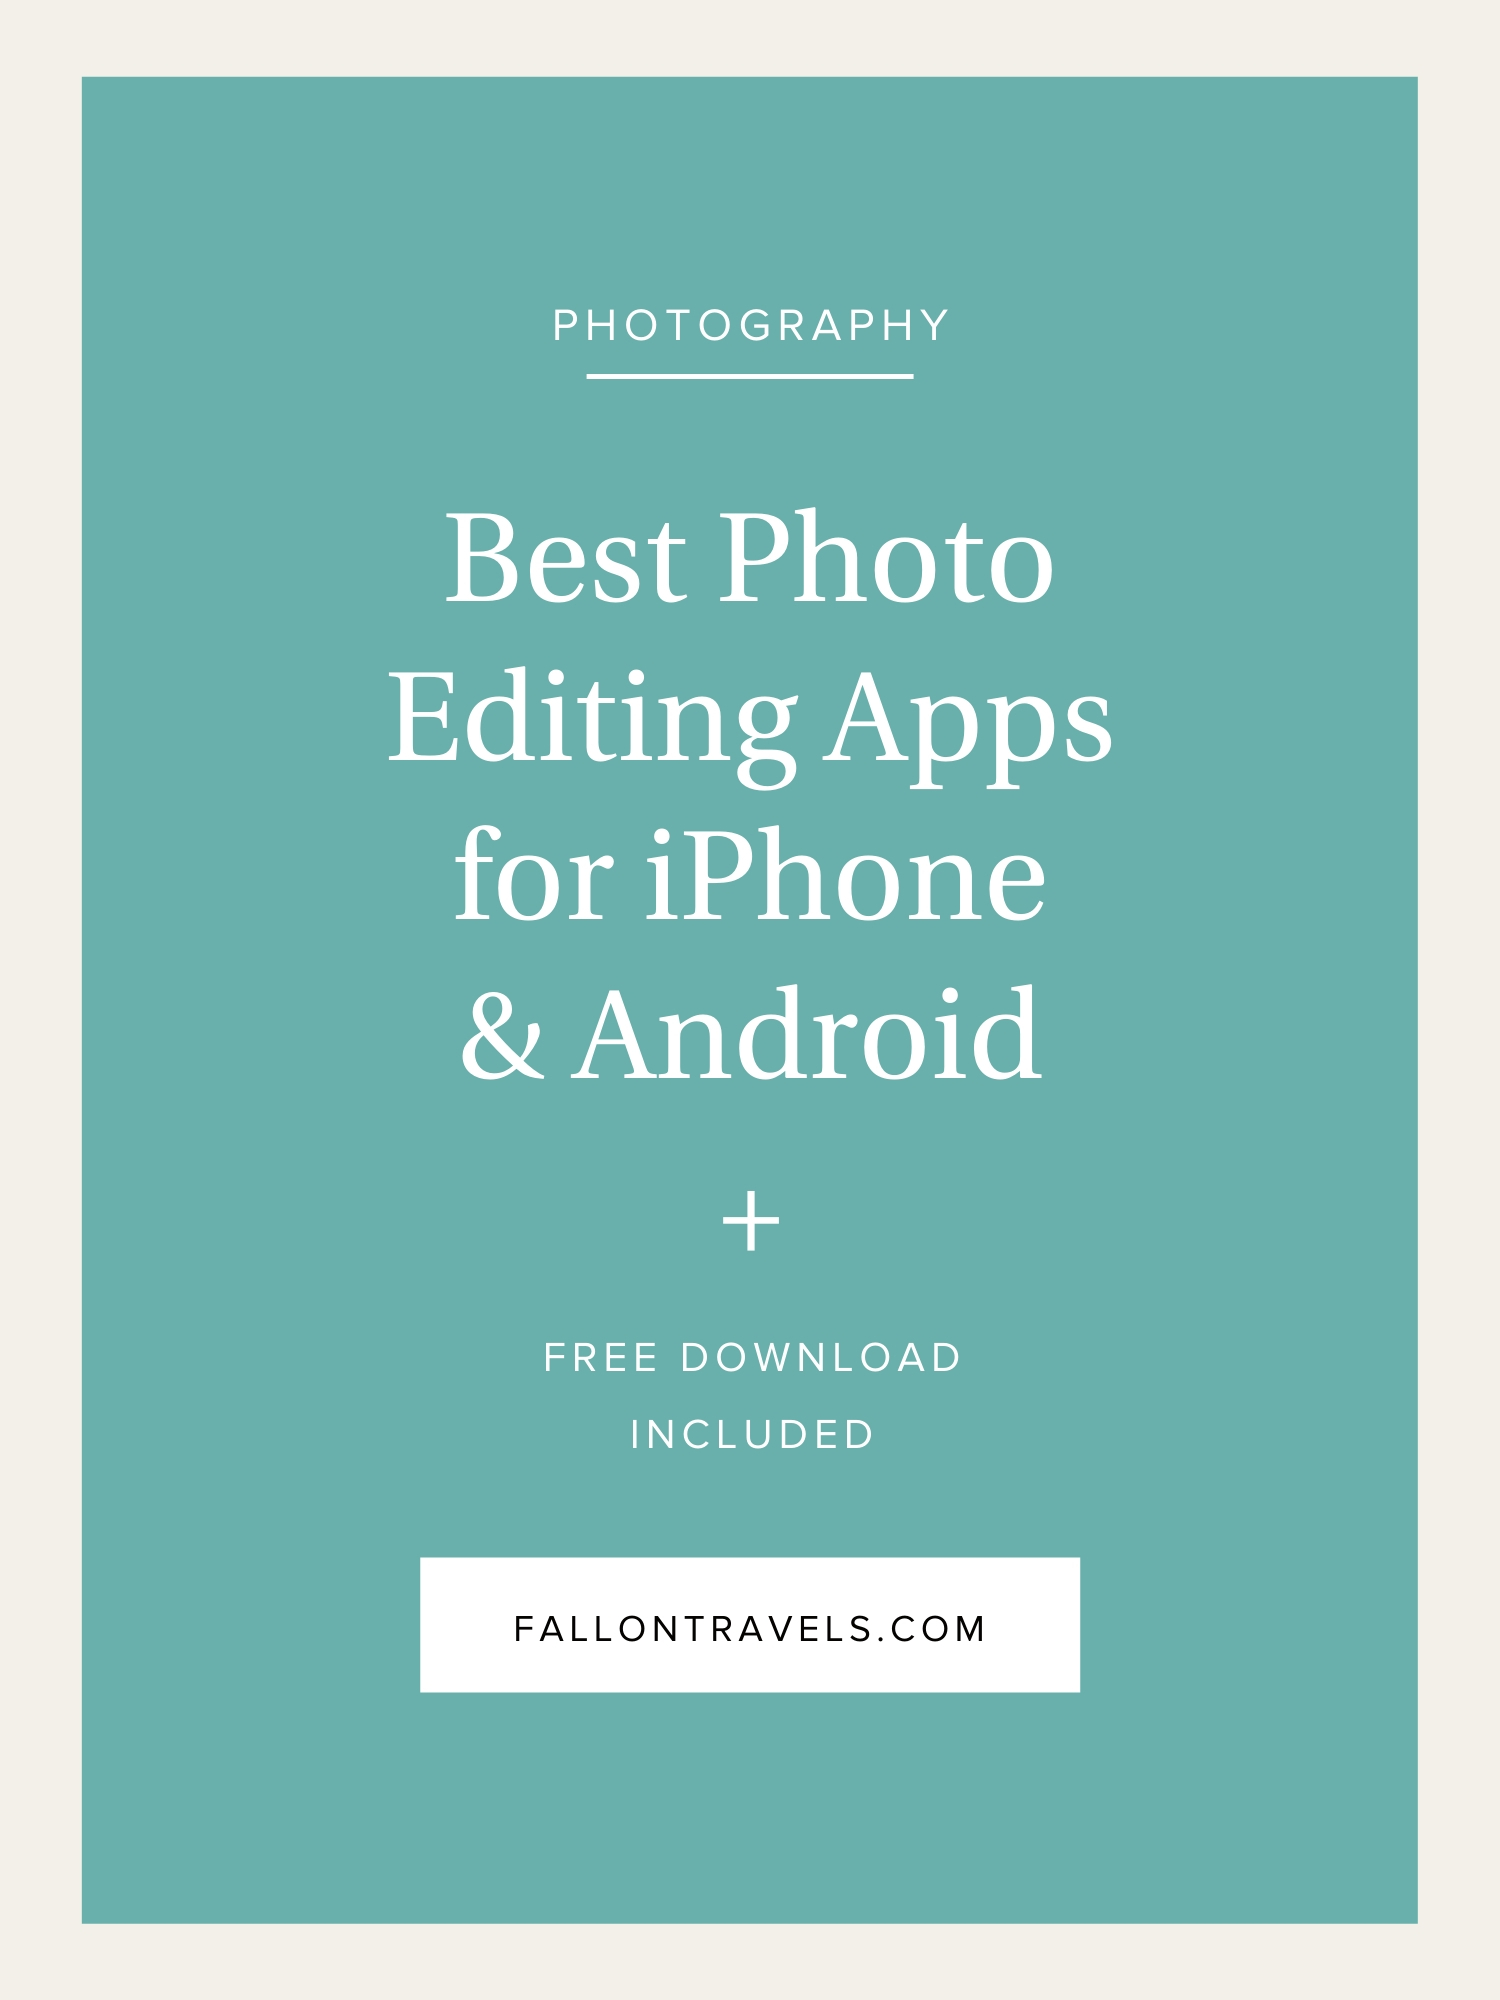 Best Photo Editing Apps for iPhone — (now includes Android